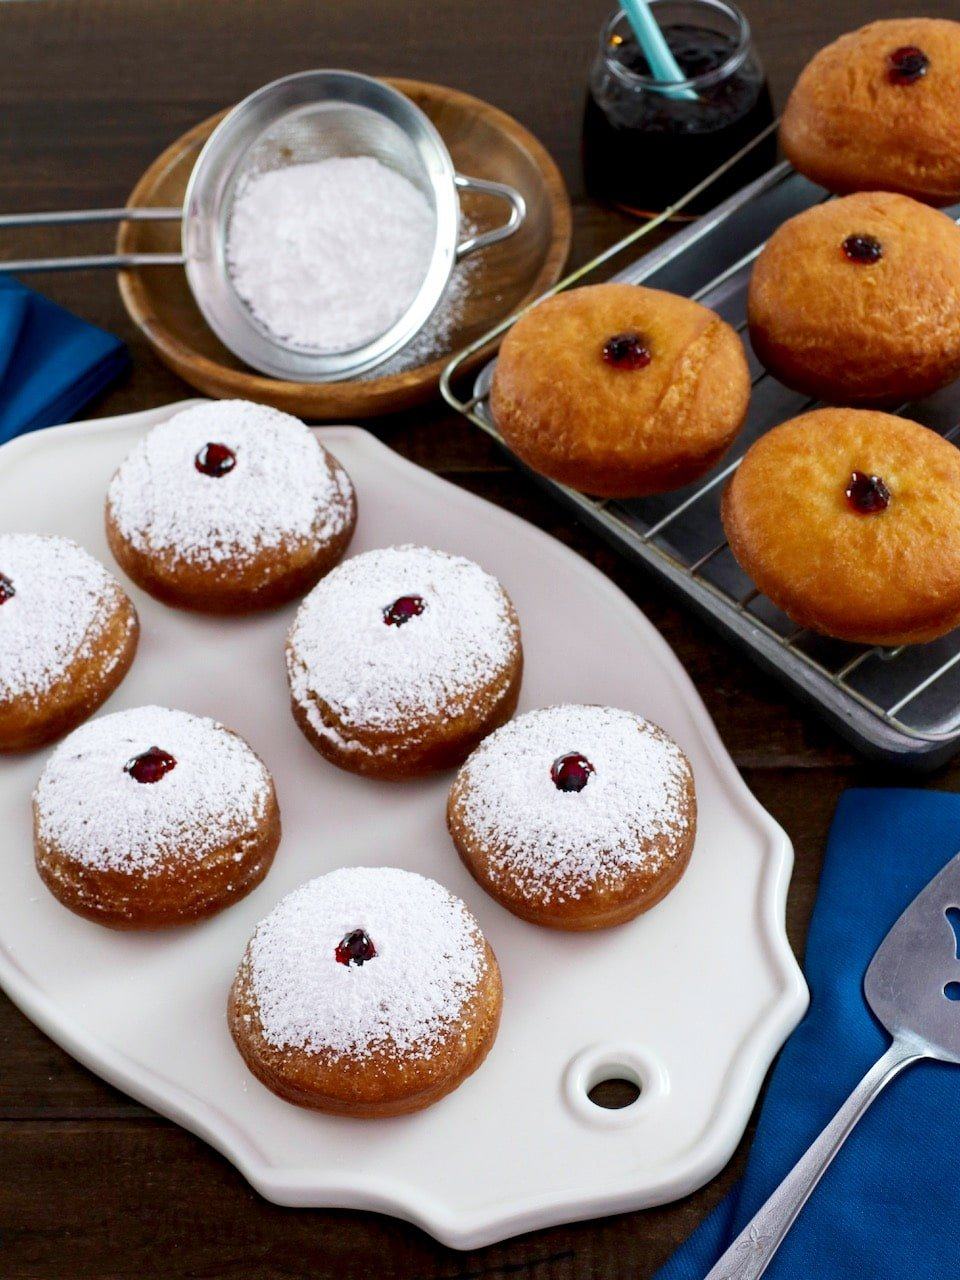 Overhead shot - sufganiyot on white platter dusted with sugar, more in background on cooling rack, with blue cloth towel. Sifter with sugar in background.